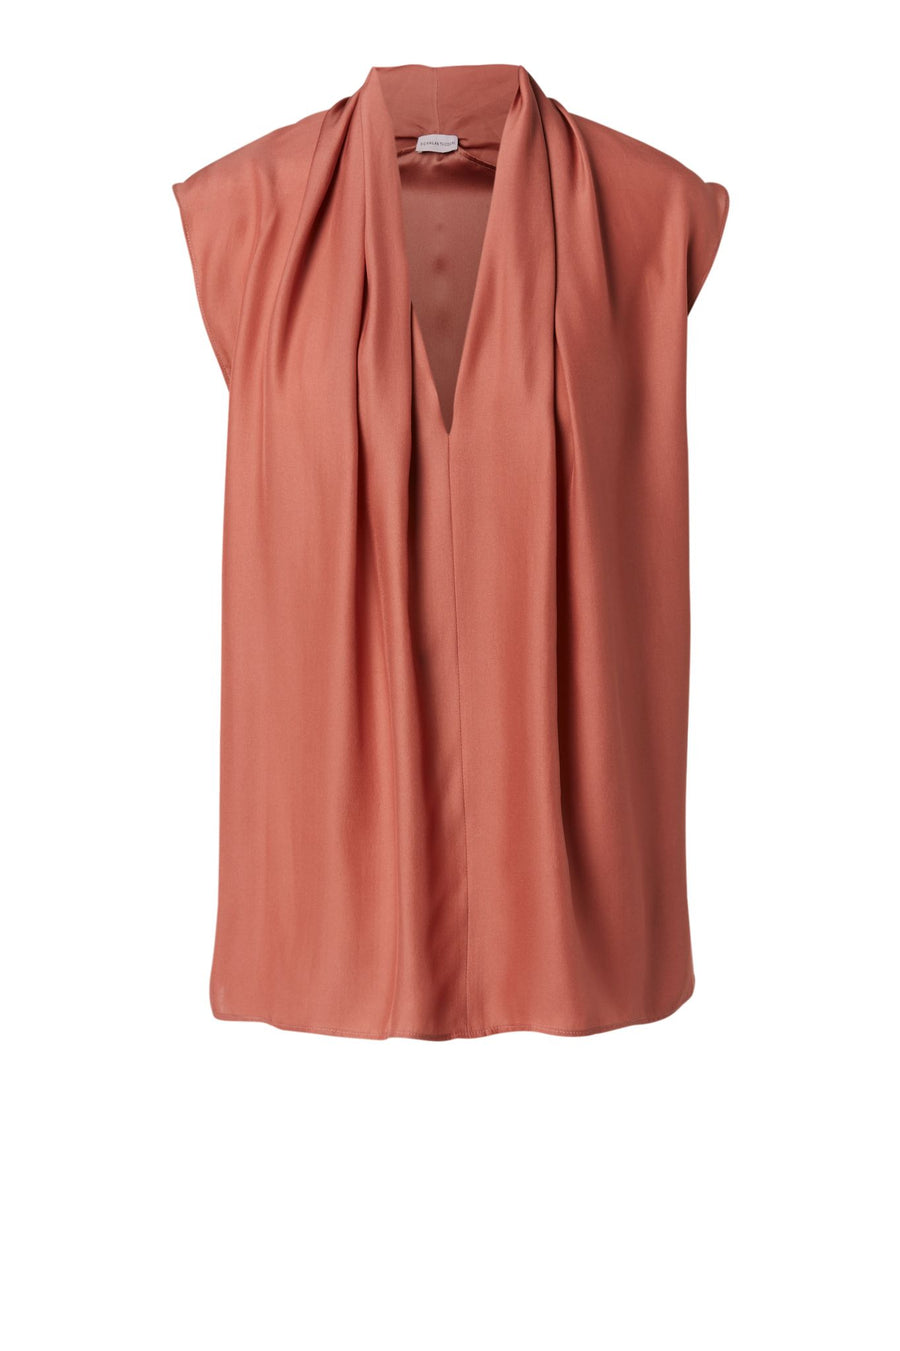 Striking on its own, and perfect under a jacket, this top is made from lustrous Italian charmeuse silk